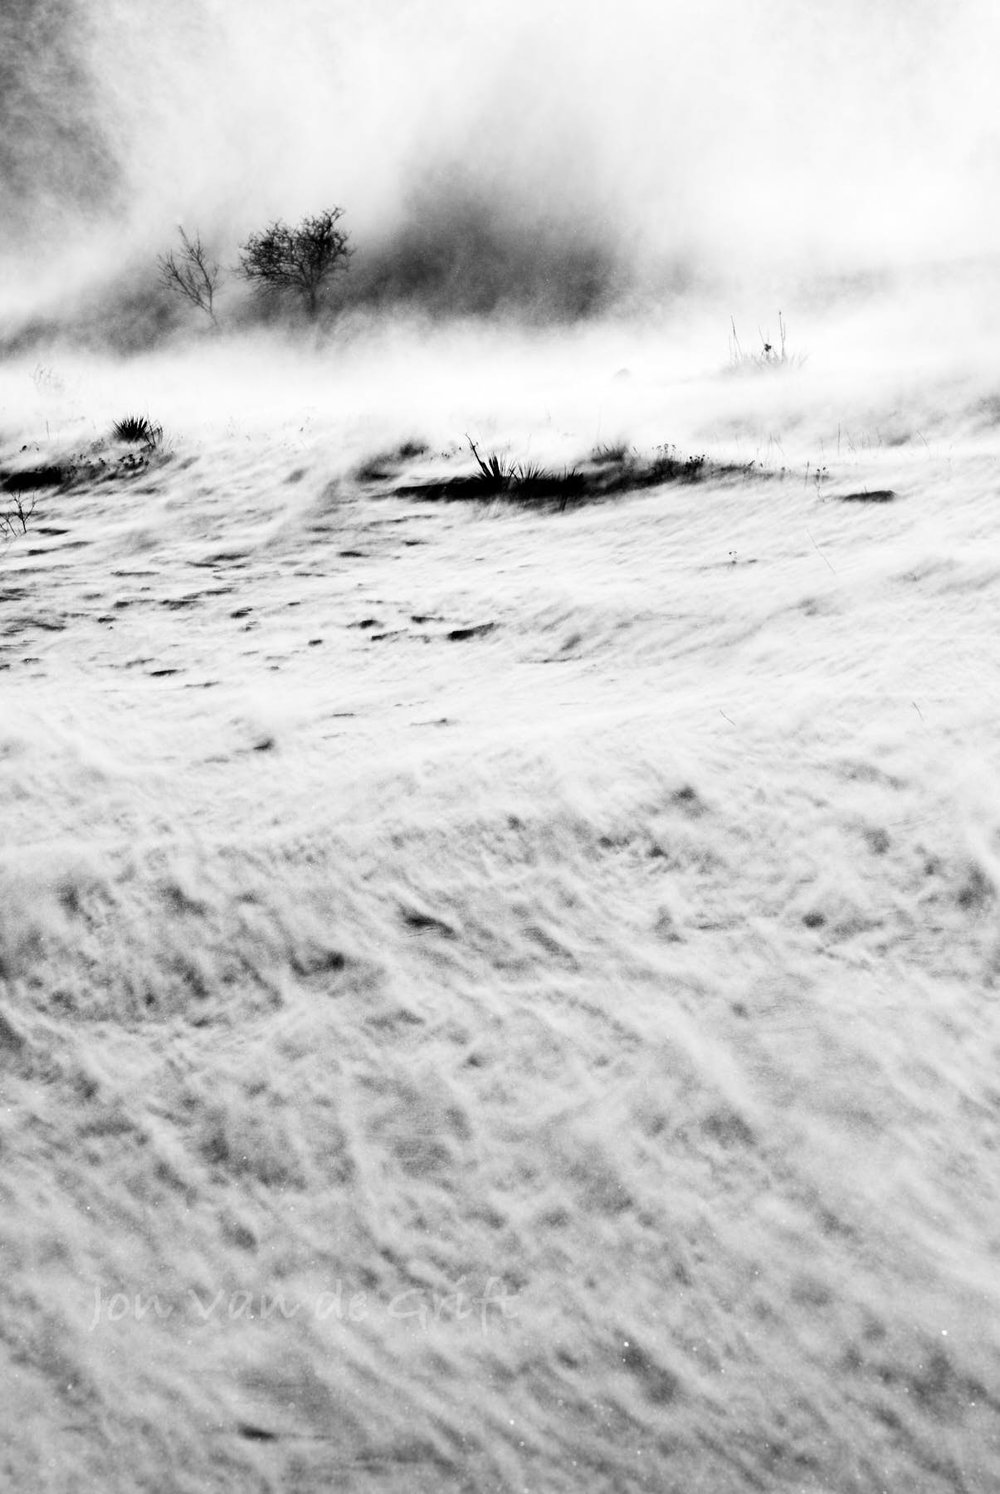 Black and white photograph of snow in a ground blizzard during winter.